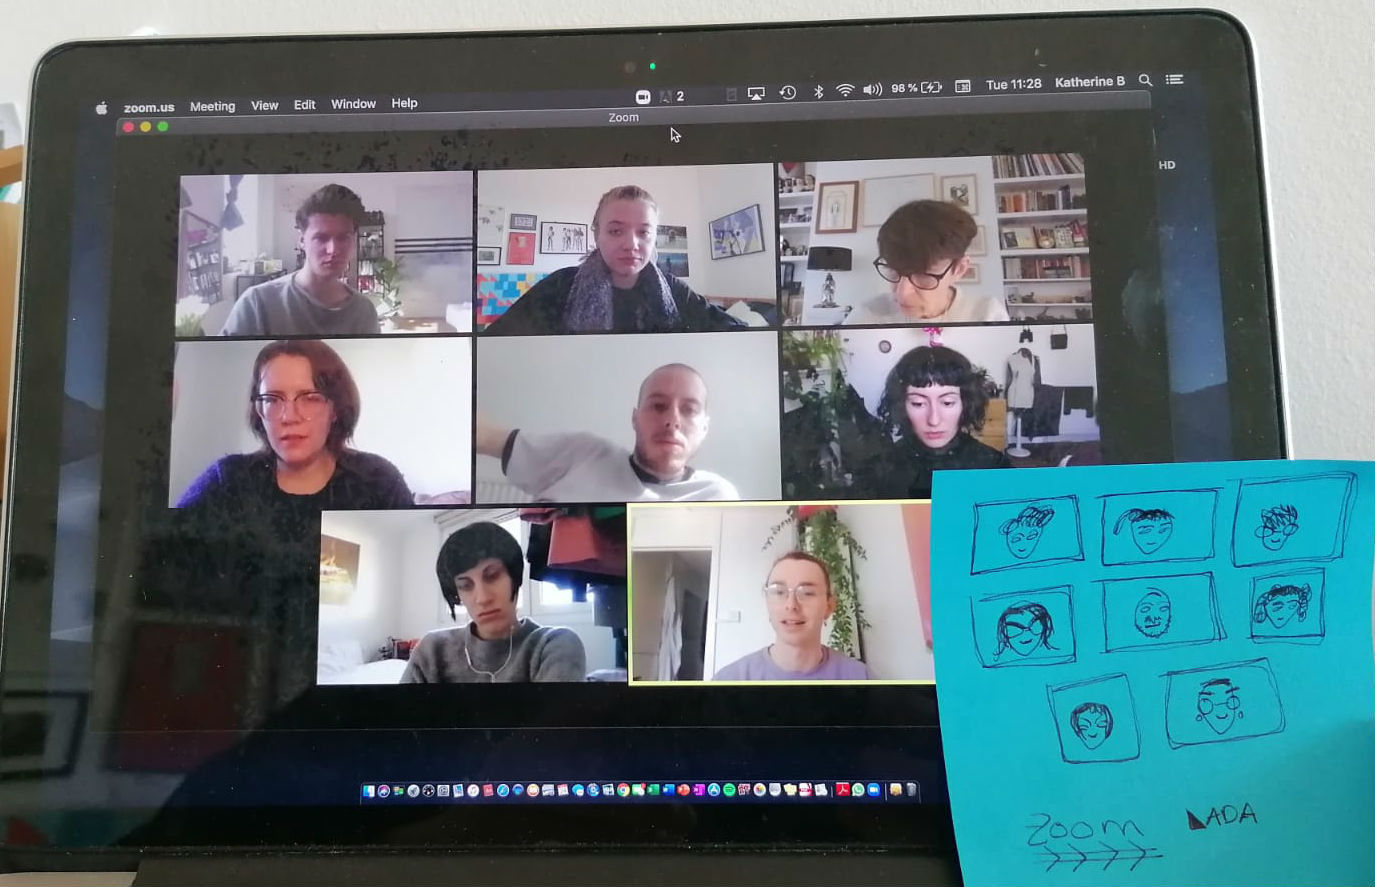 An image of laptop screen with the LADA team in a zoom meeting, accompanied by a drawing of the team.